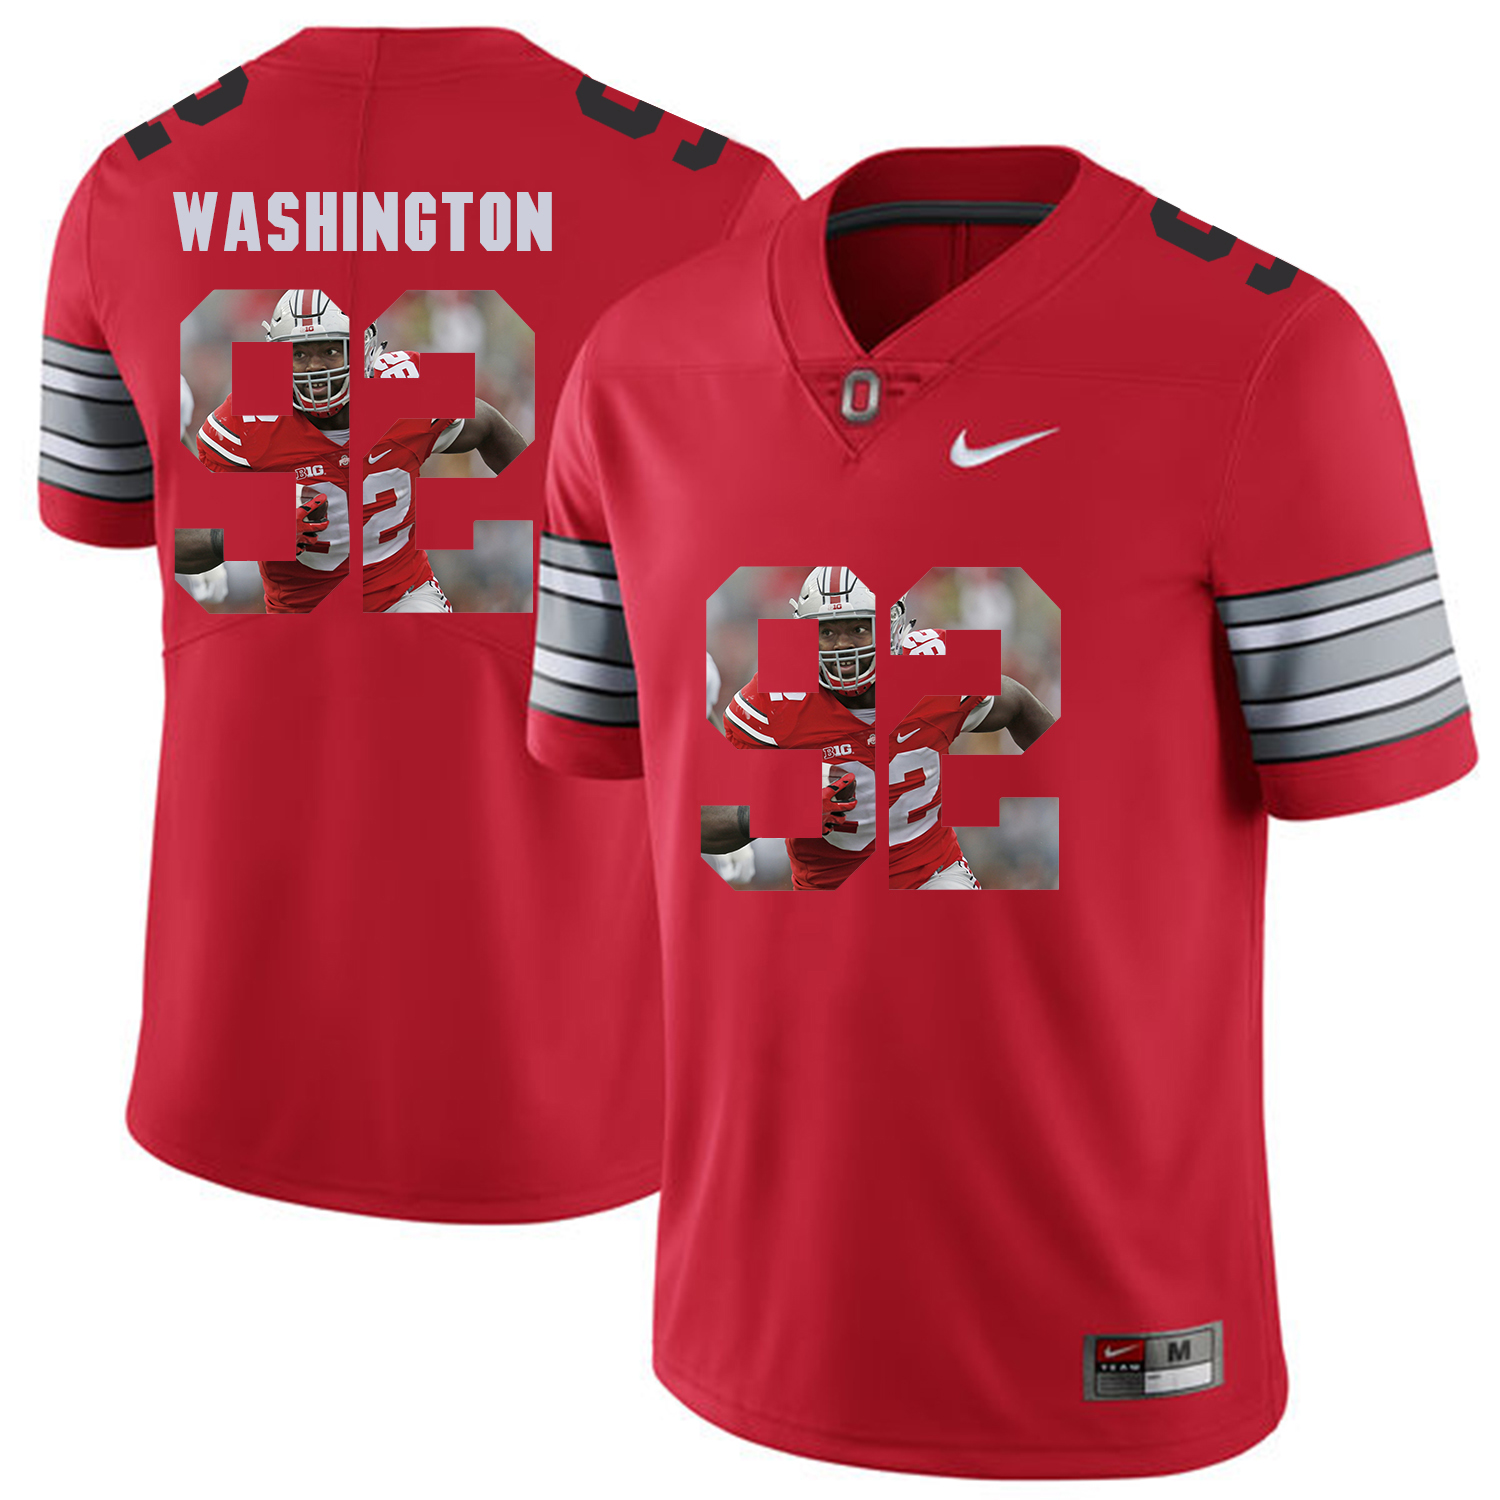 Men Ohio State 92 Washington Red Fashion Edition Customized NCAA Jerseys